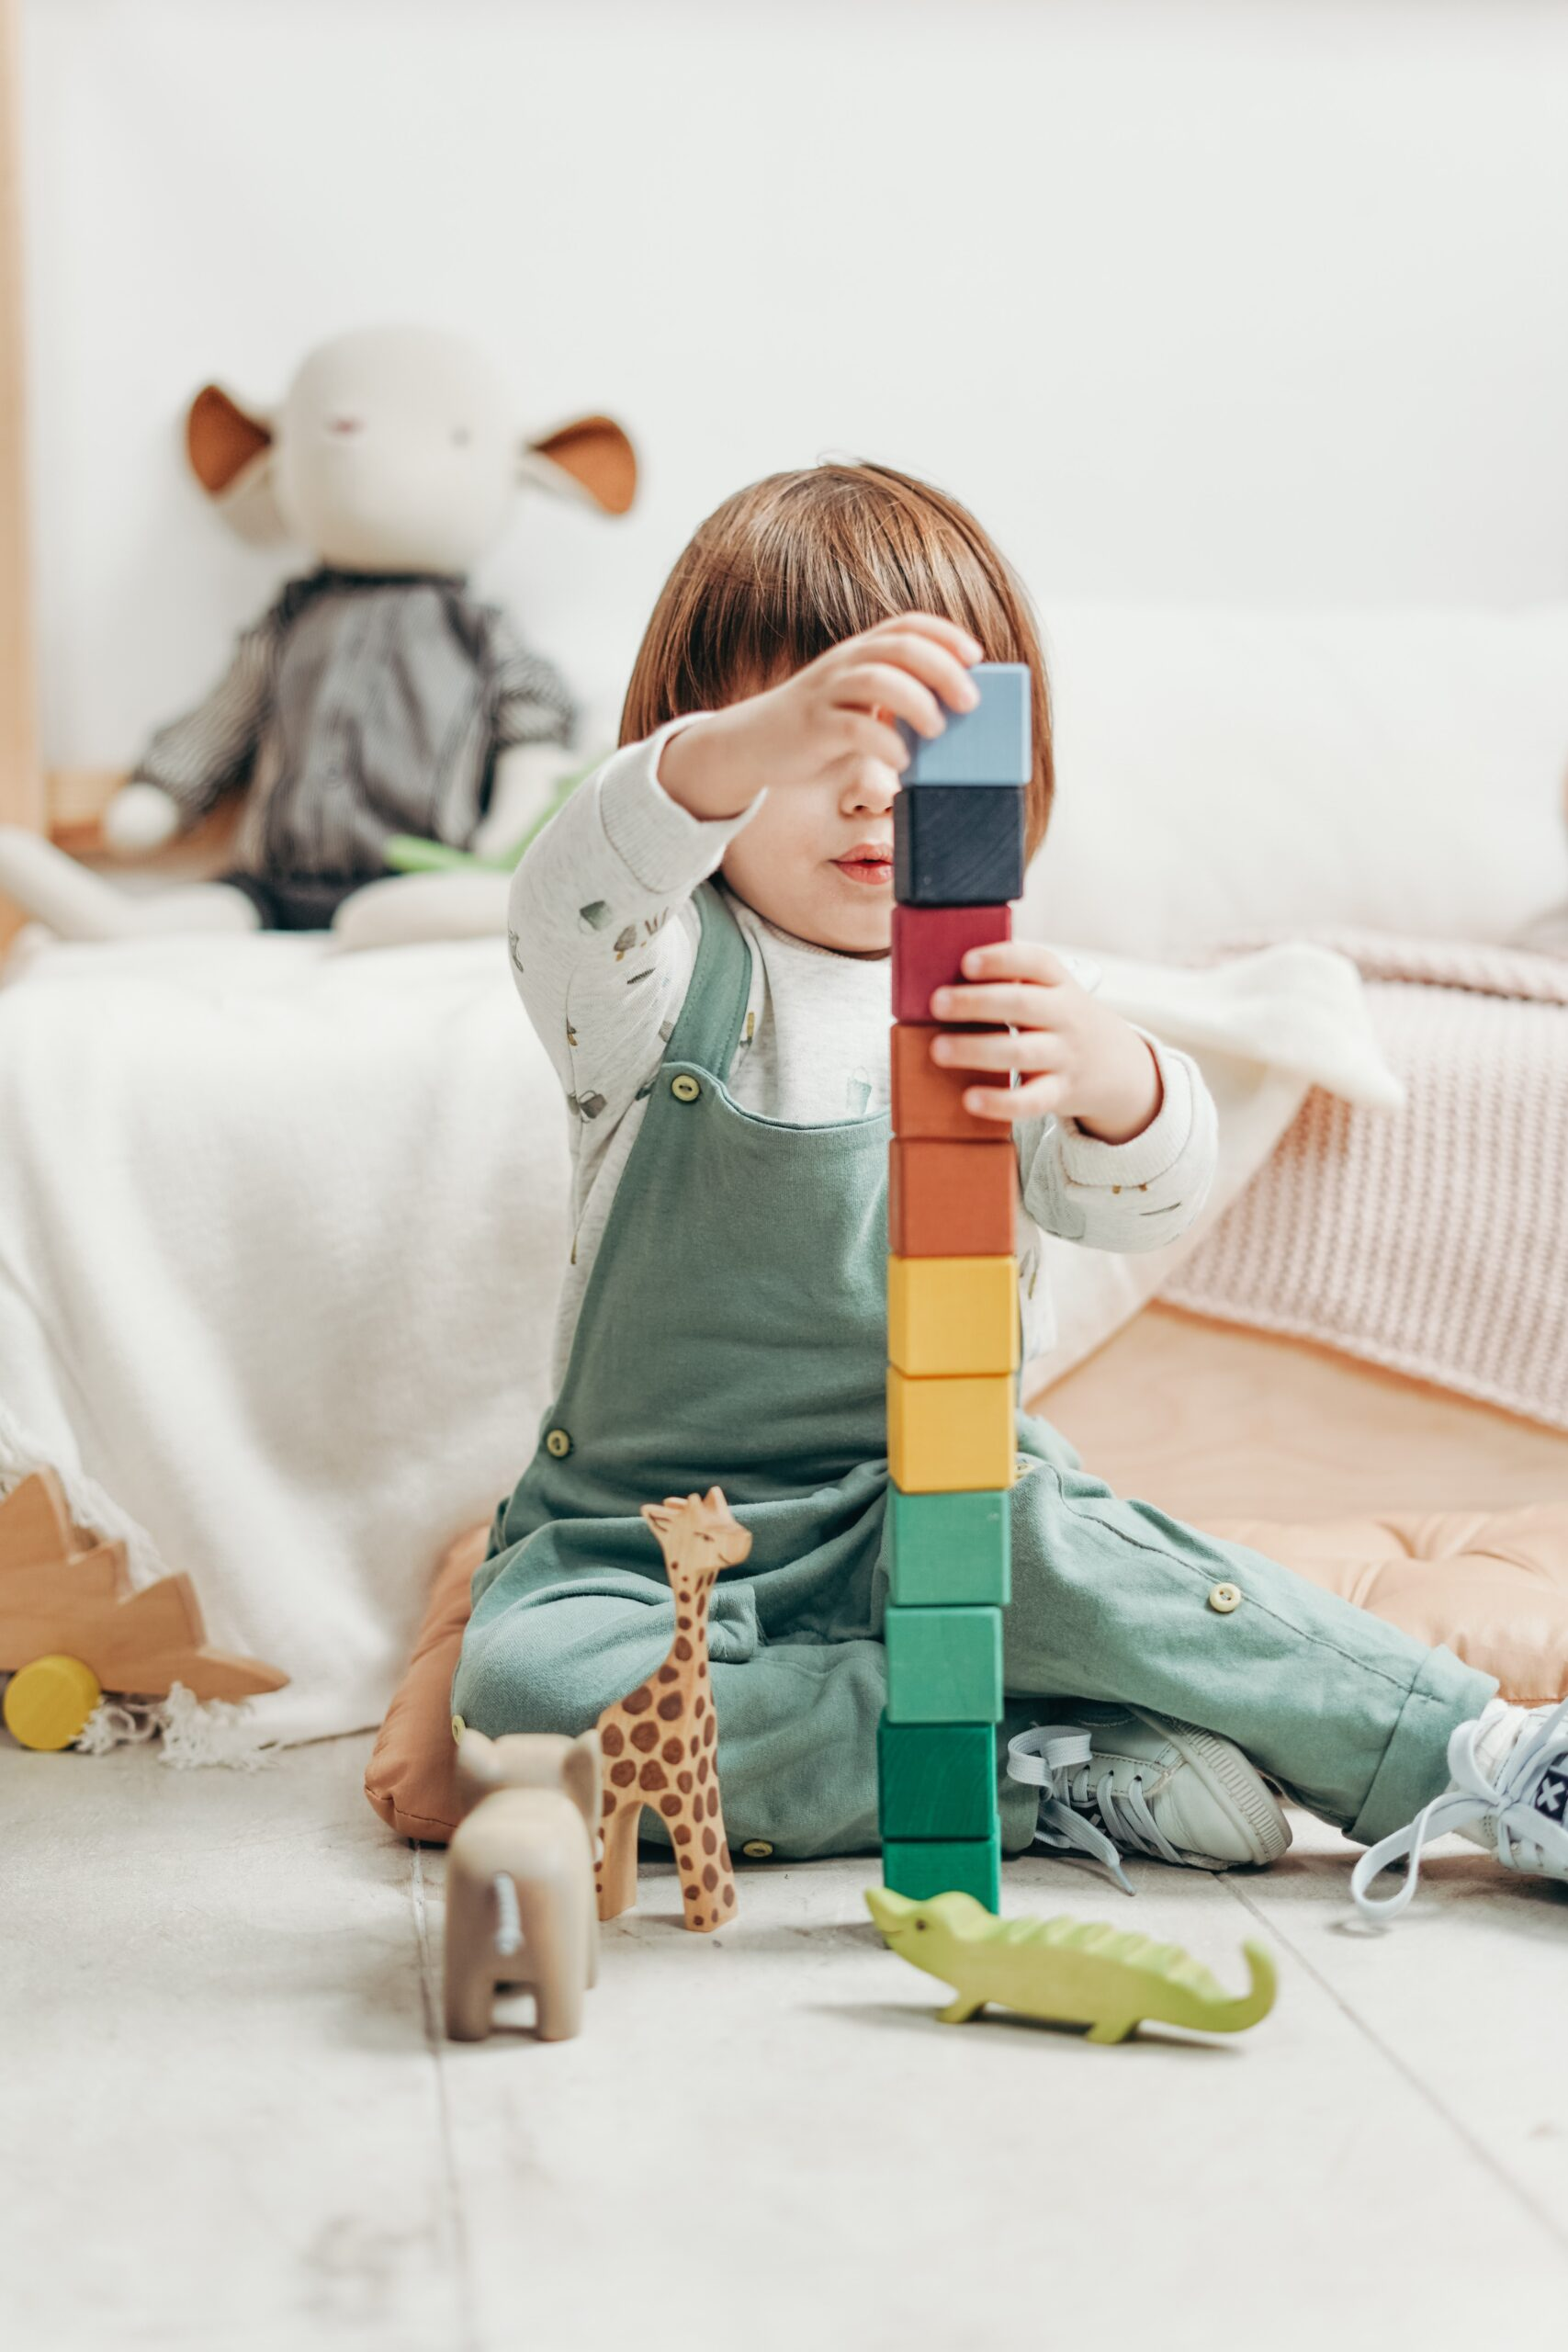 Kid Playing-Child Care